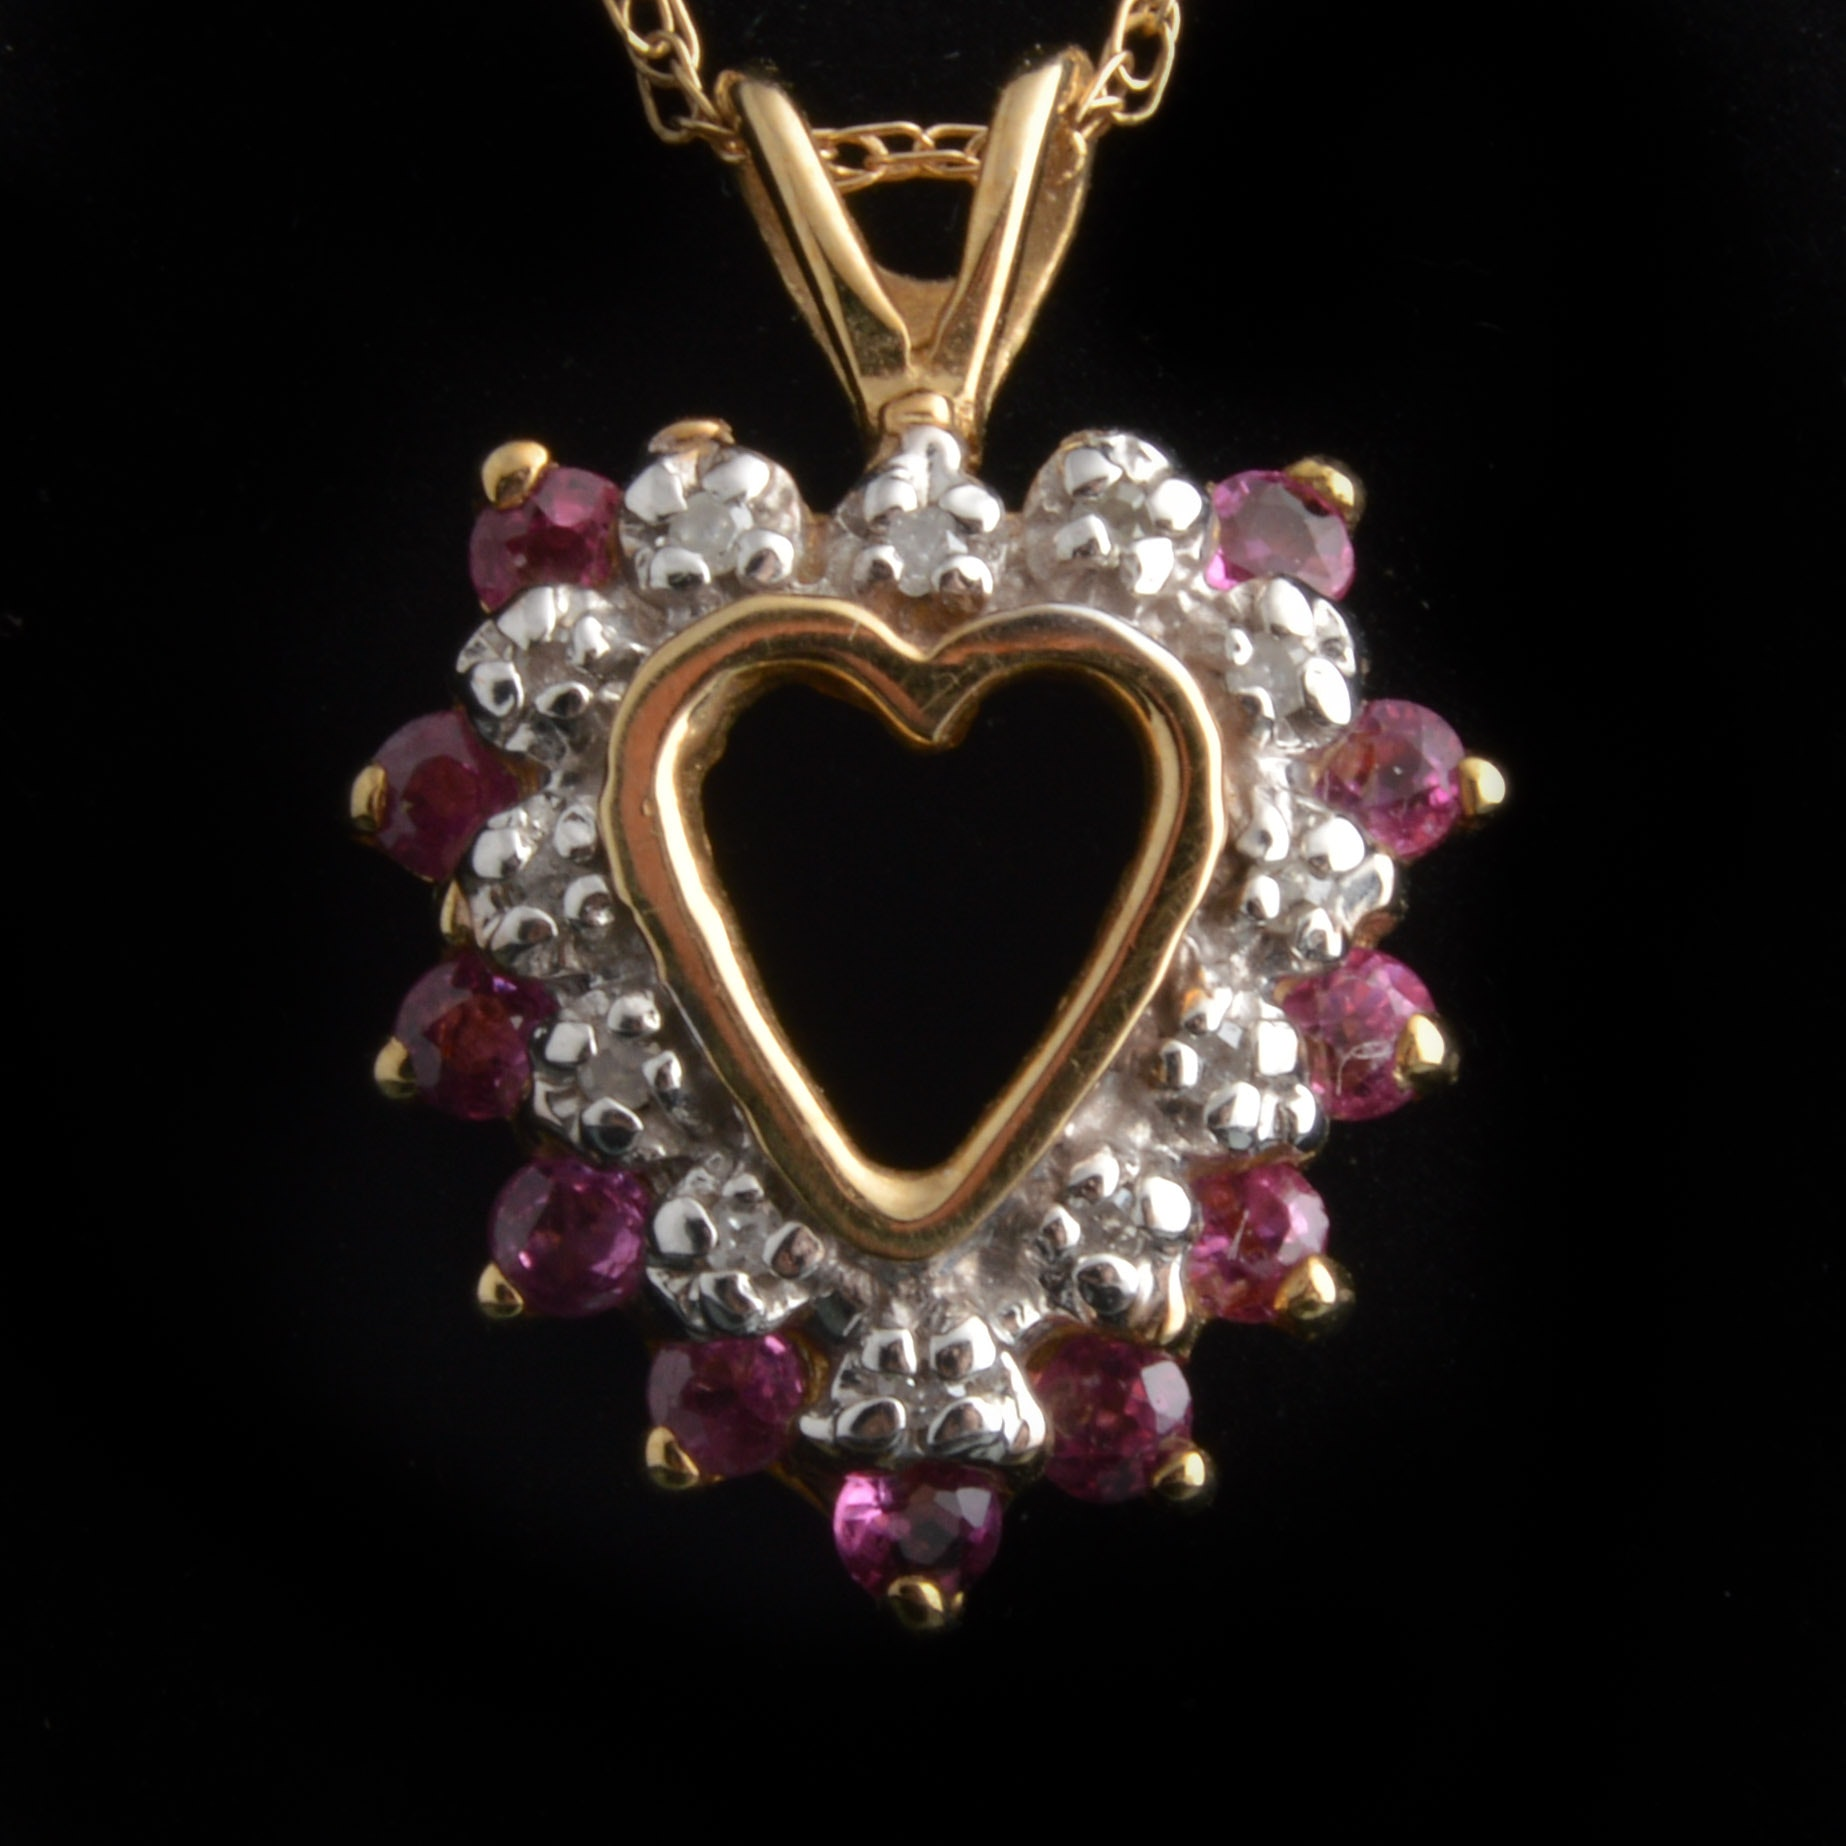 10K Yellow Gold Heart Necklace with Rubies and Diamonds